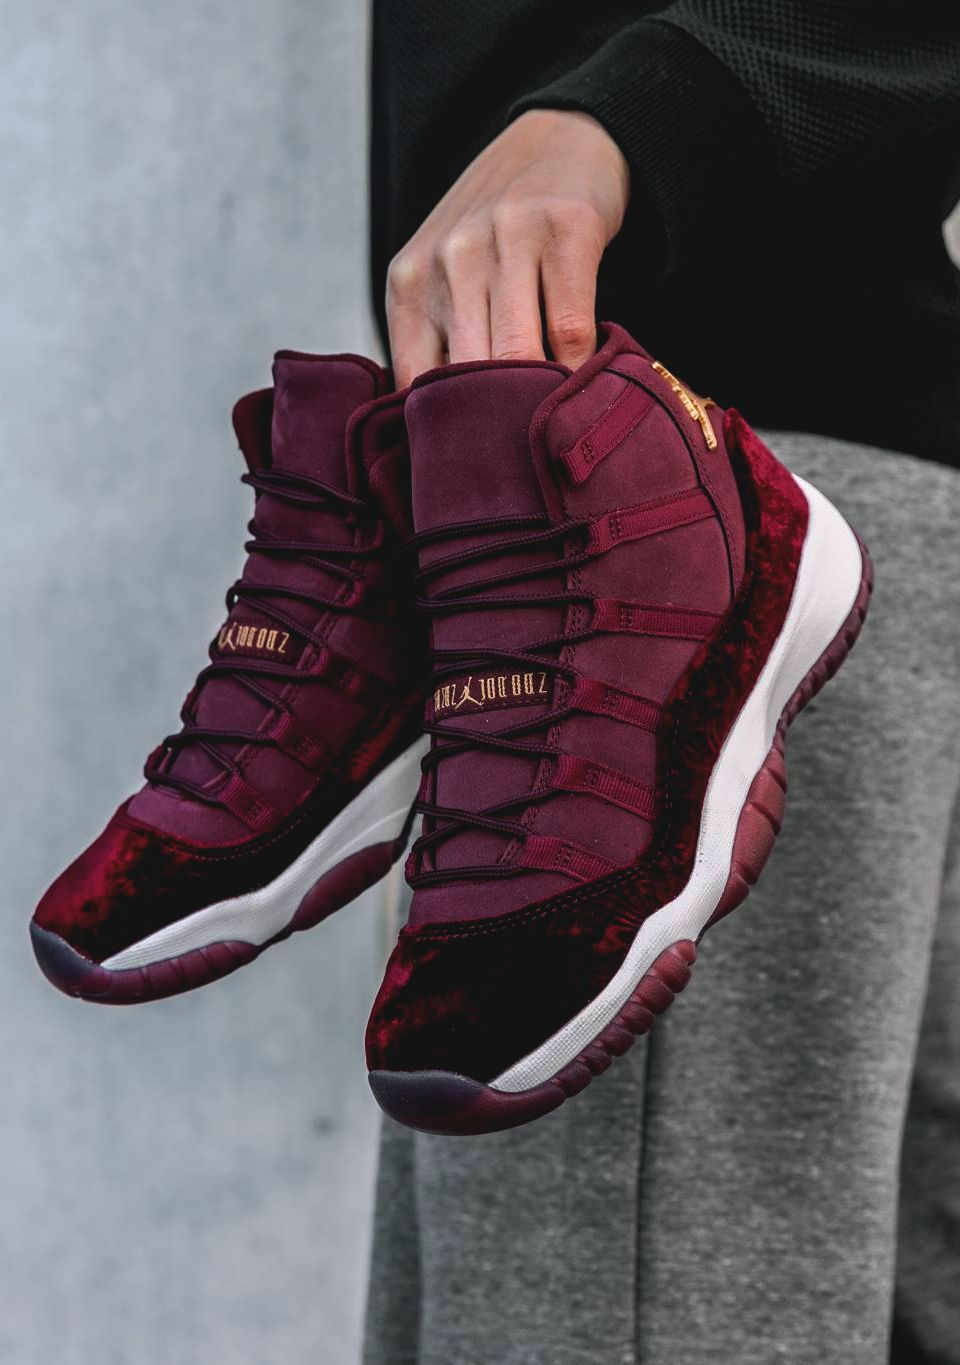 Air Jordan 11 Retro RL GG Heiress  Red Velvet  (via Overkill ... f1c1fa96f6bc